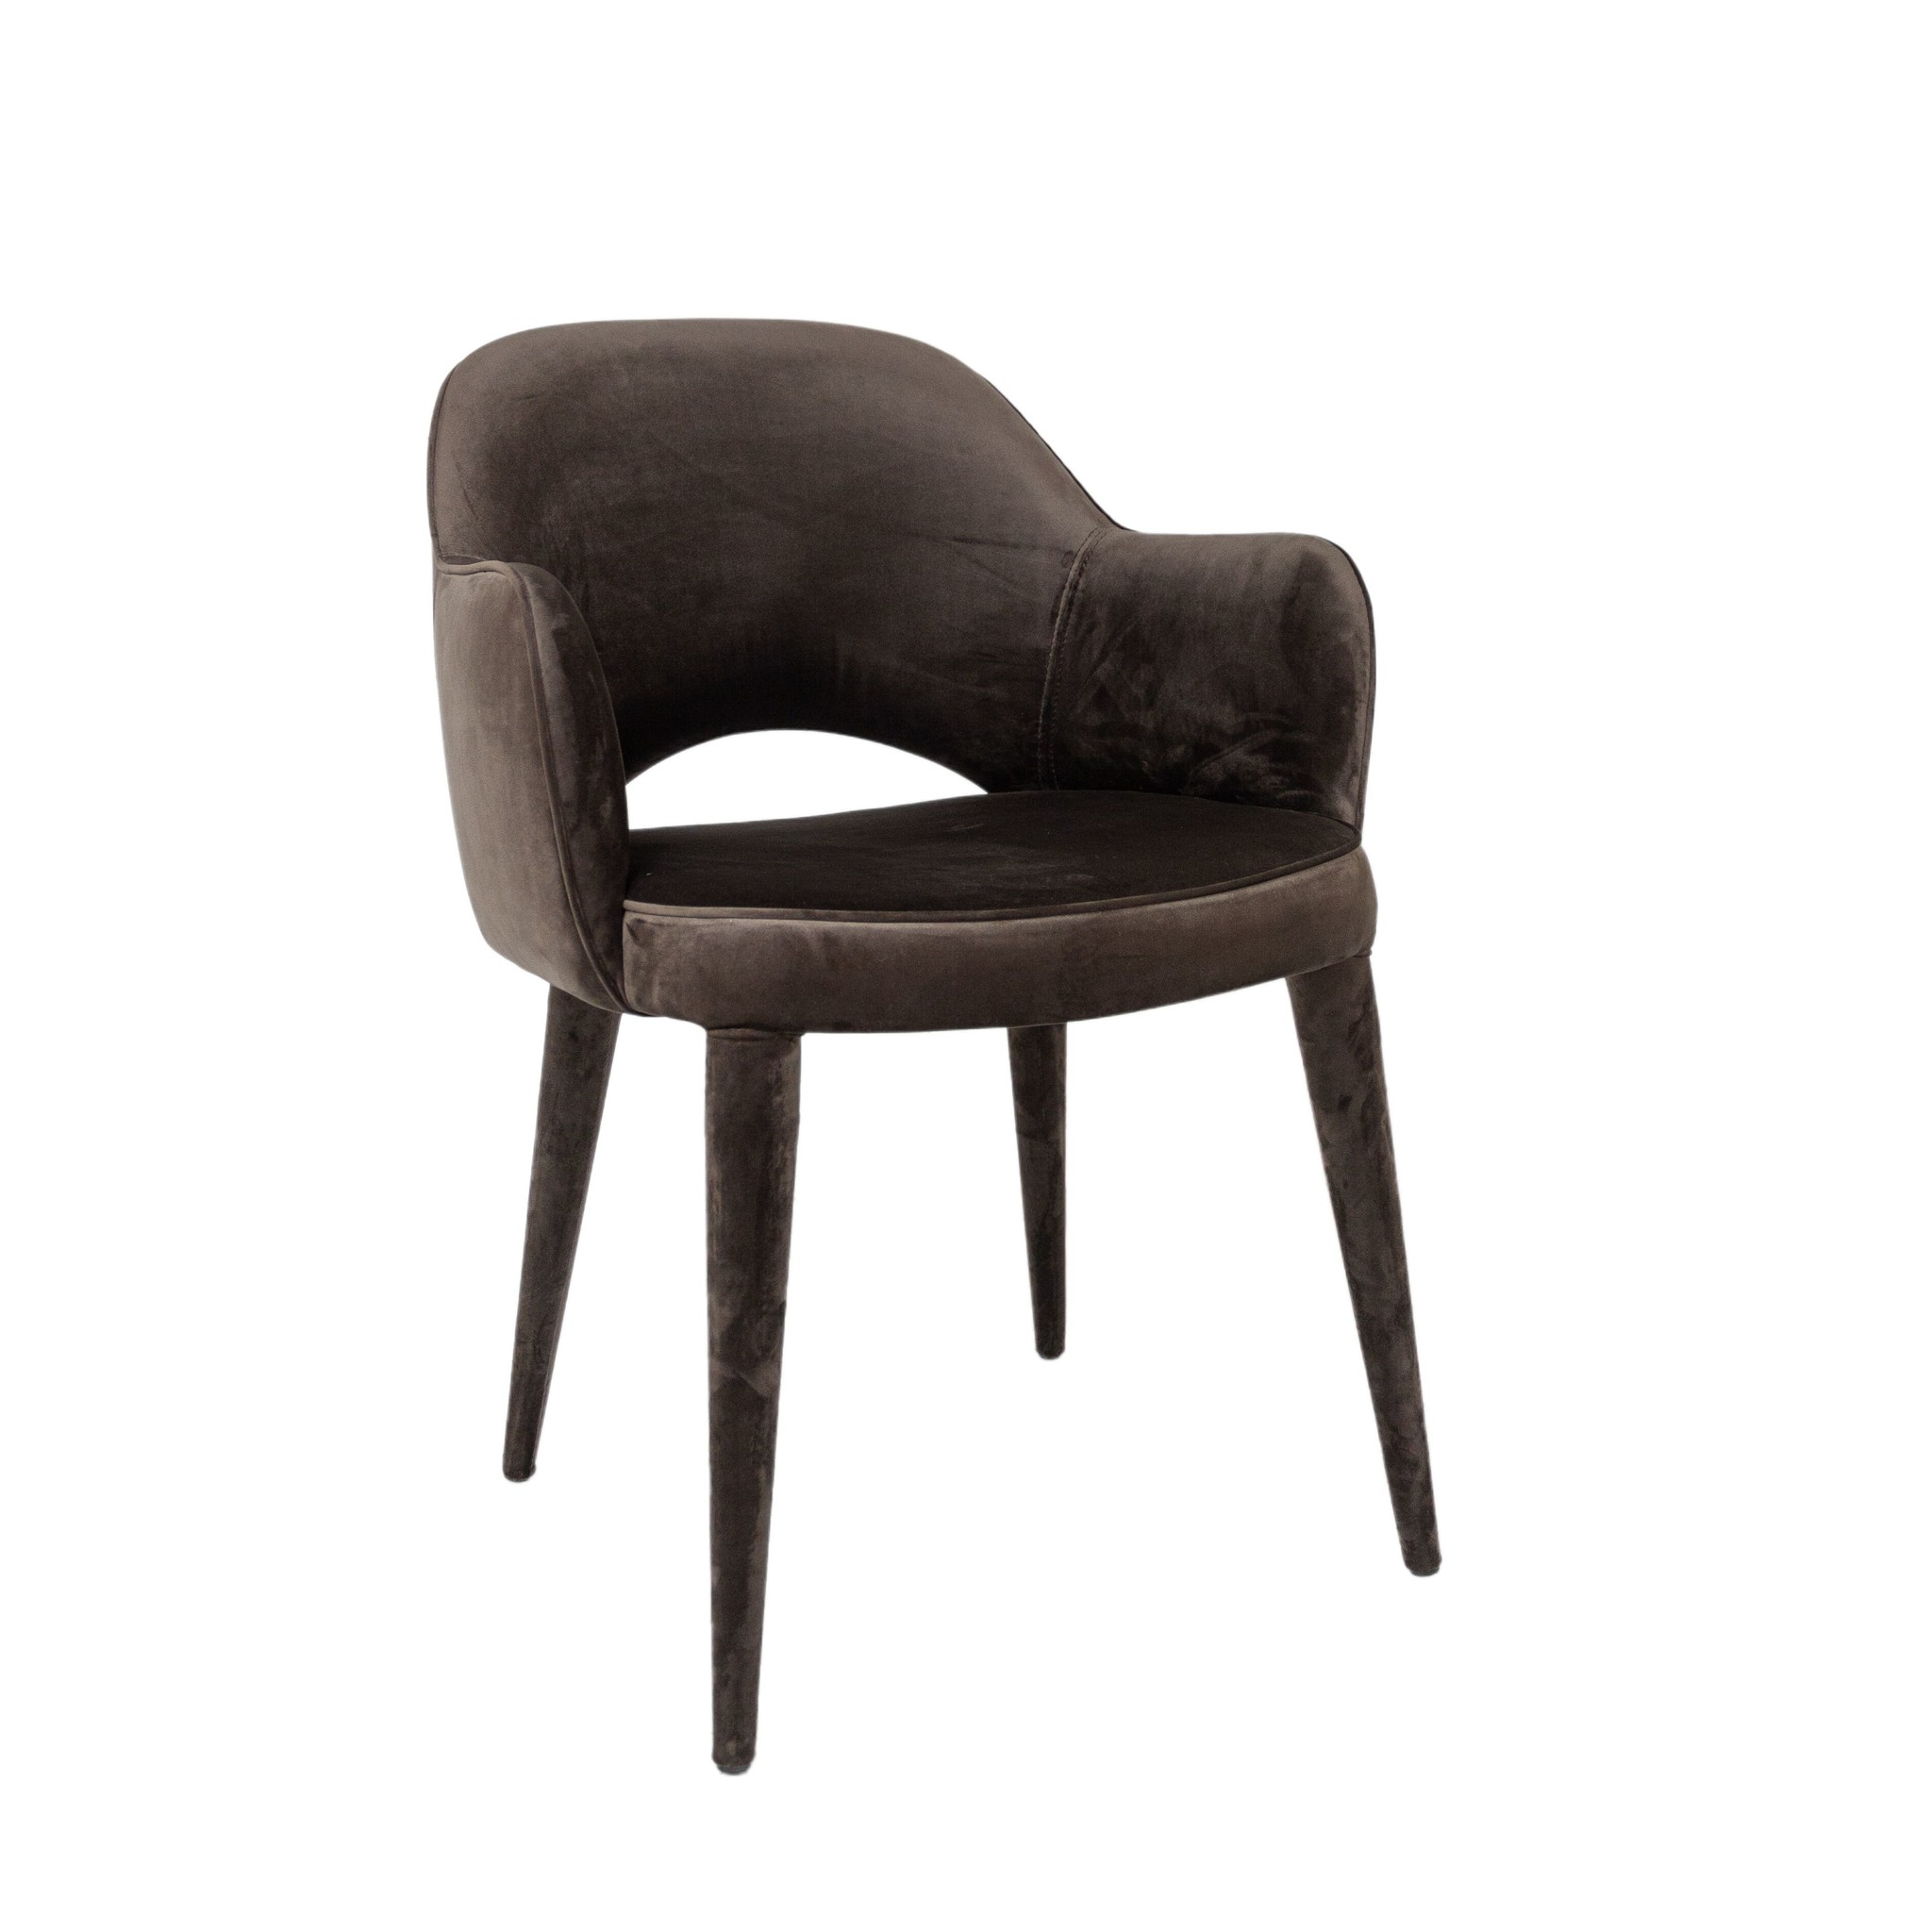 dining chair with armrest